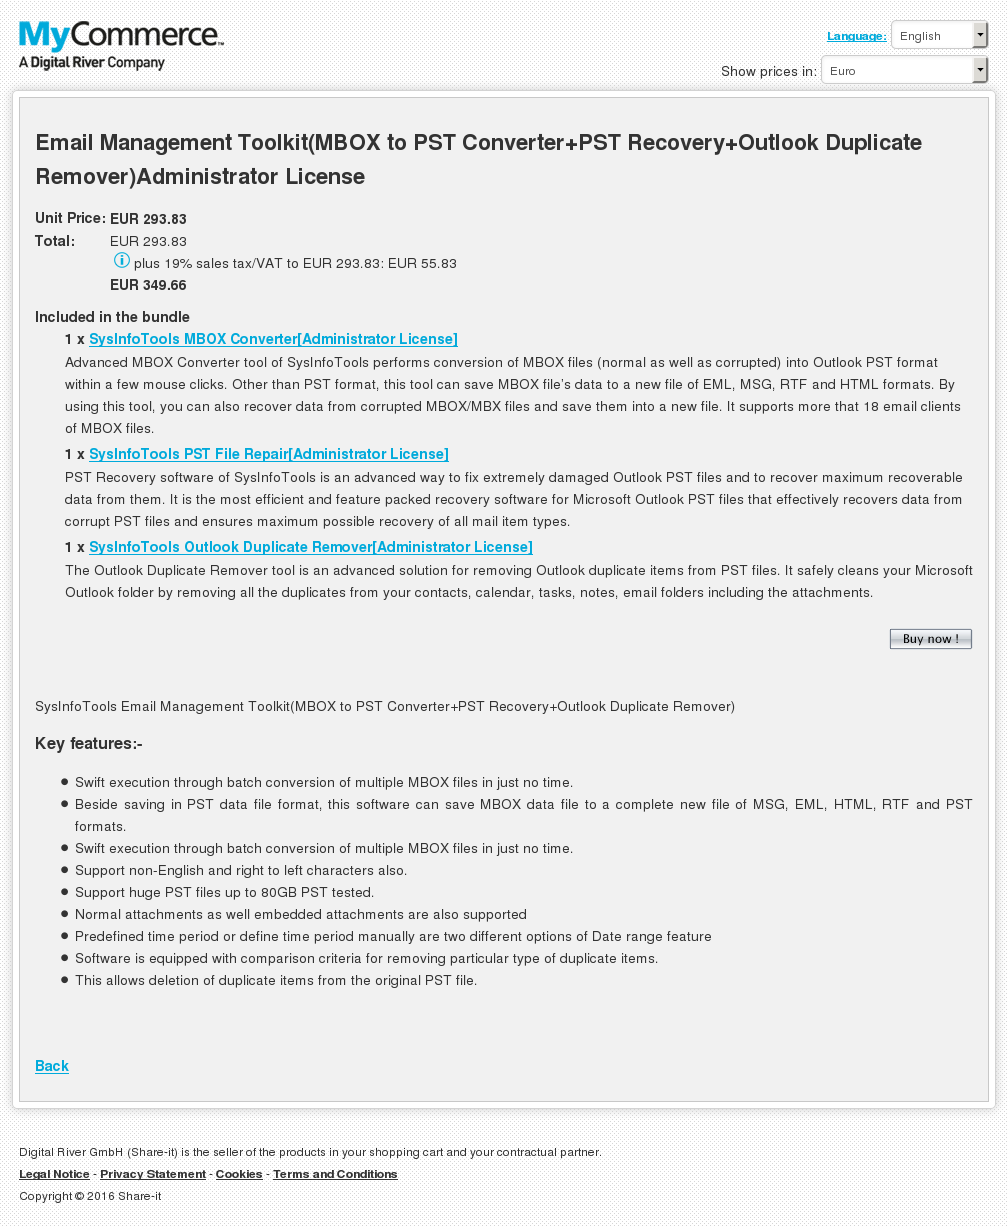 Email Management Toolkit Mbox Pst Converter Recovery Outlook Duplicate Remover Administrator License Download